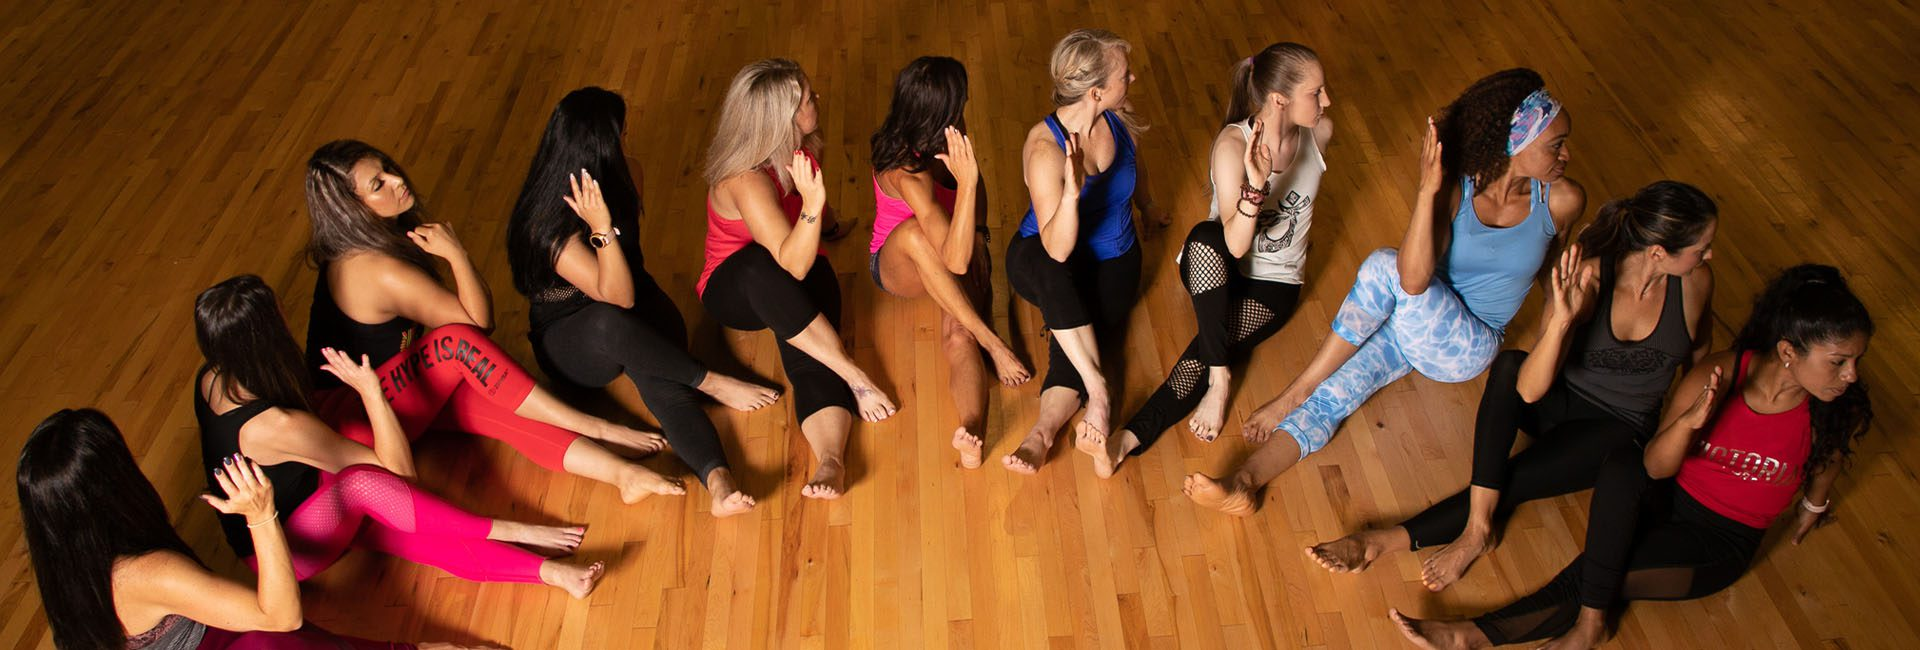 Group Yoga/Pilates class stretching